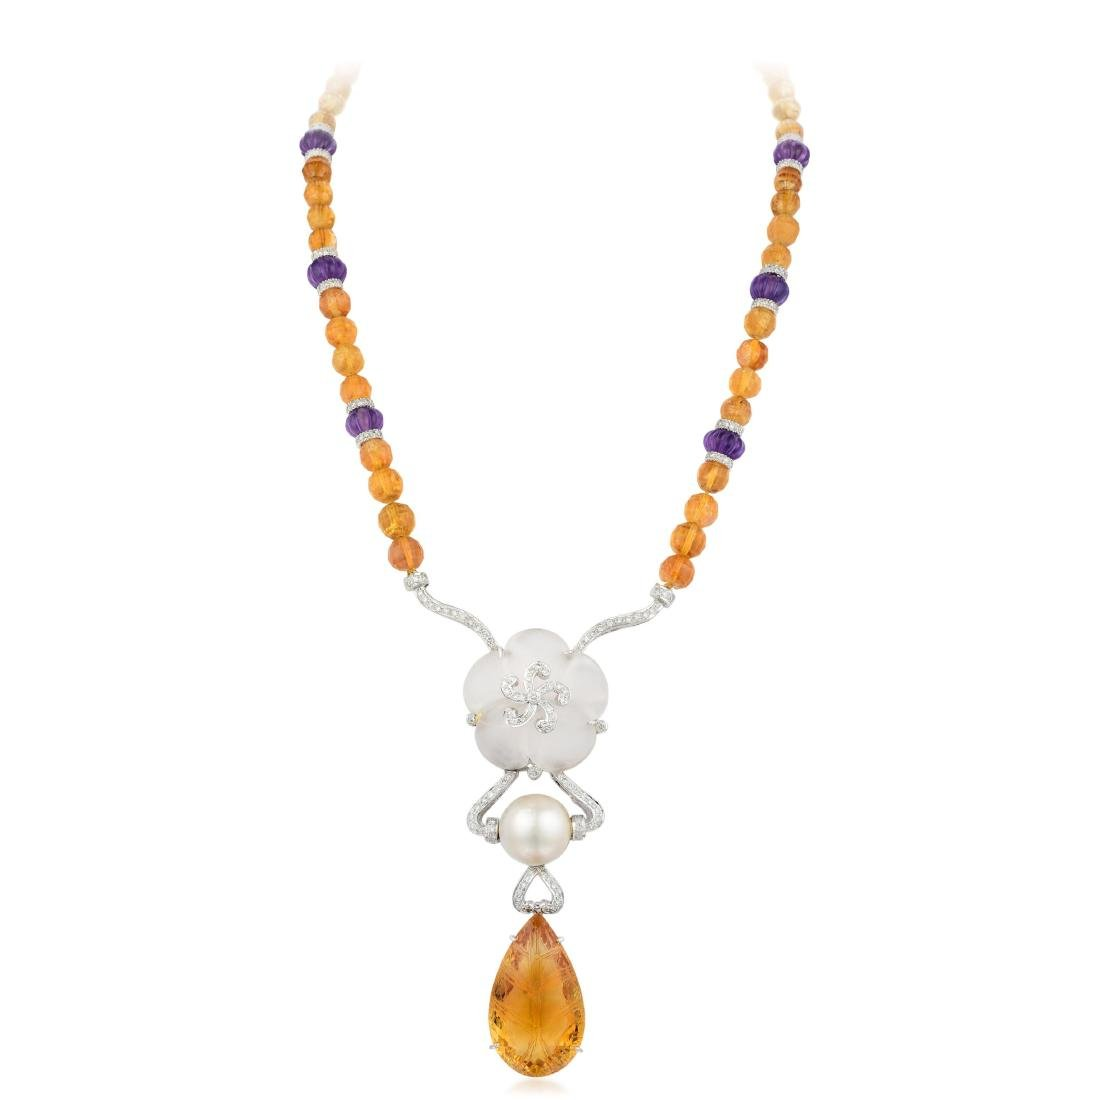 A Citrine Amethyst and Diamond Necklace